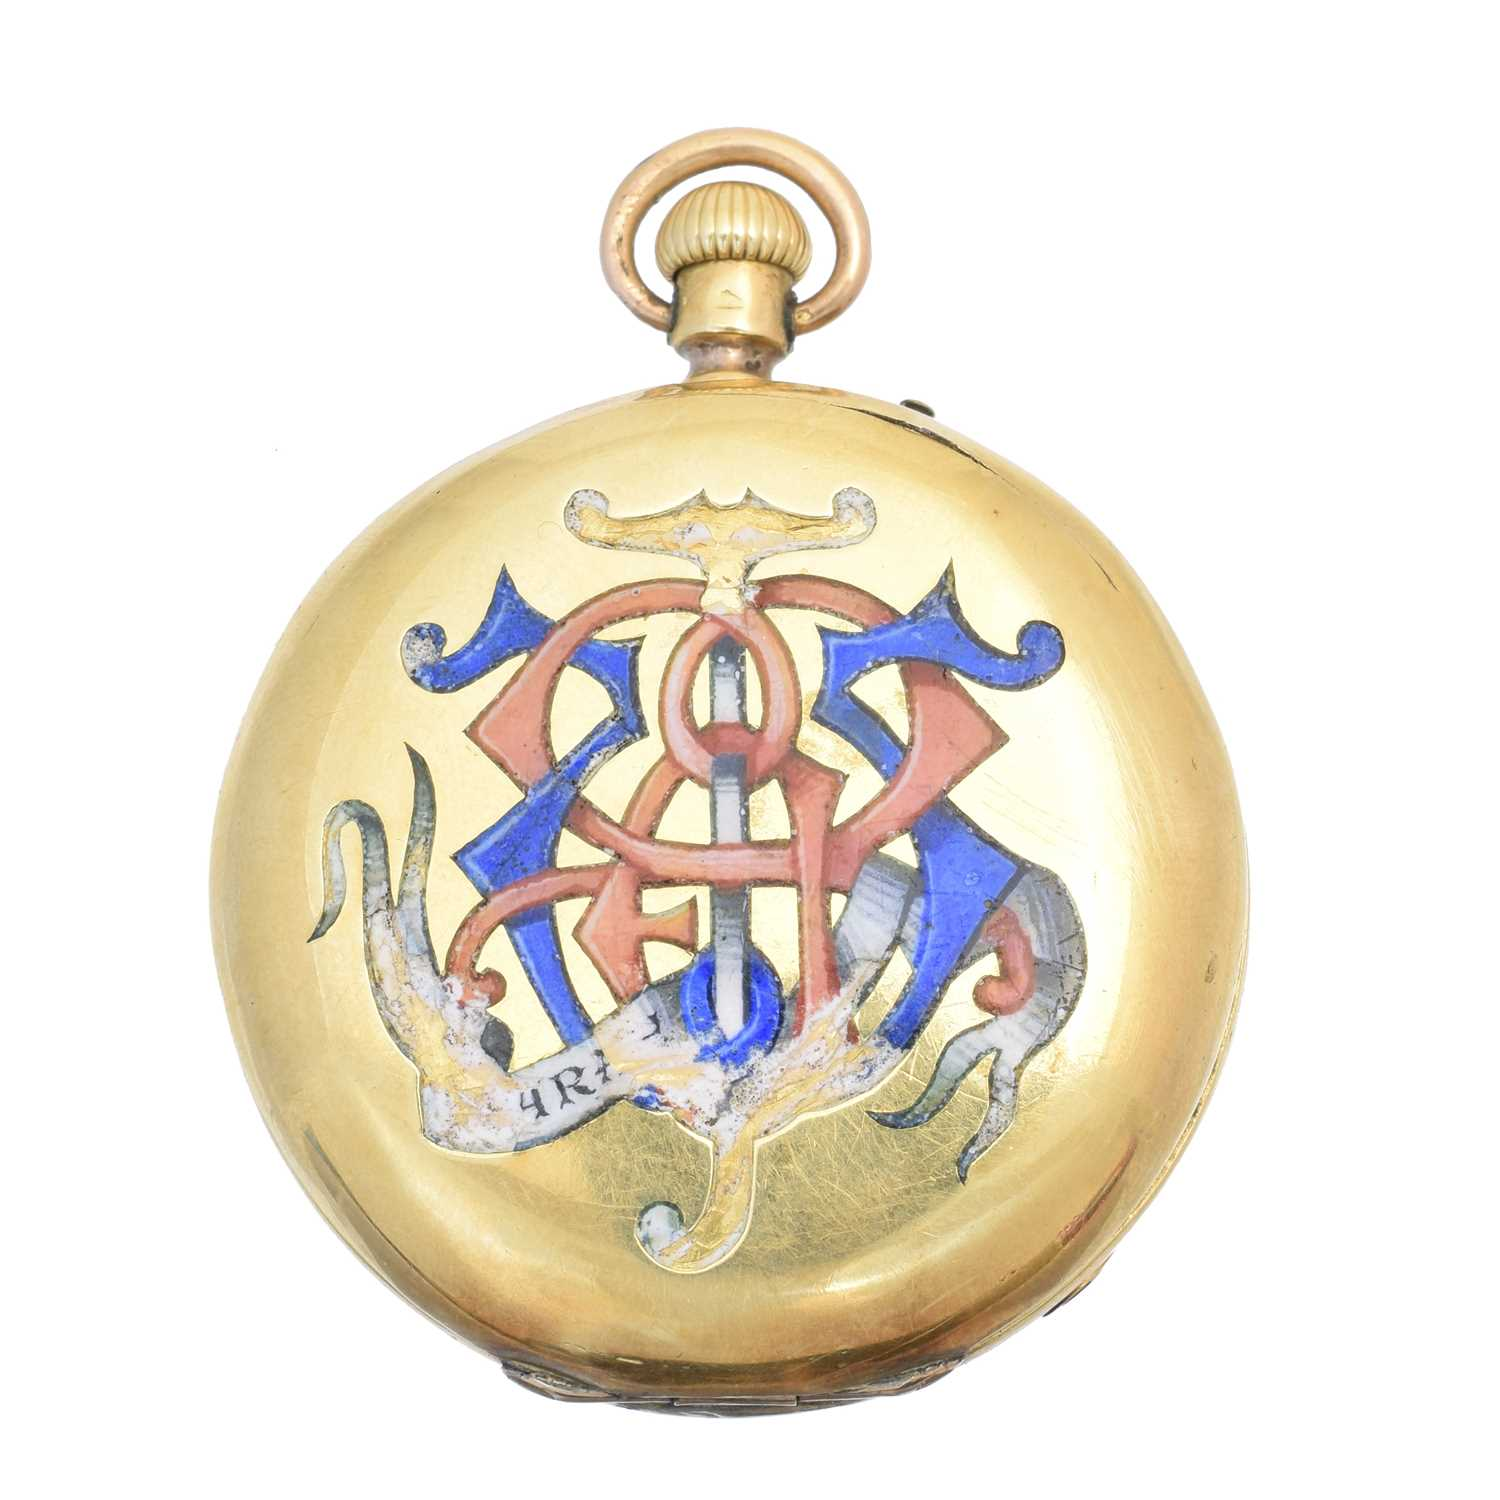 A late 19th century 18ct gold enamel hunter pocket watch, - Image 2 of 5